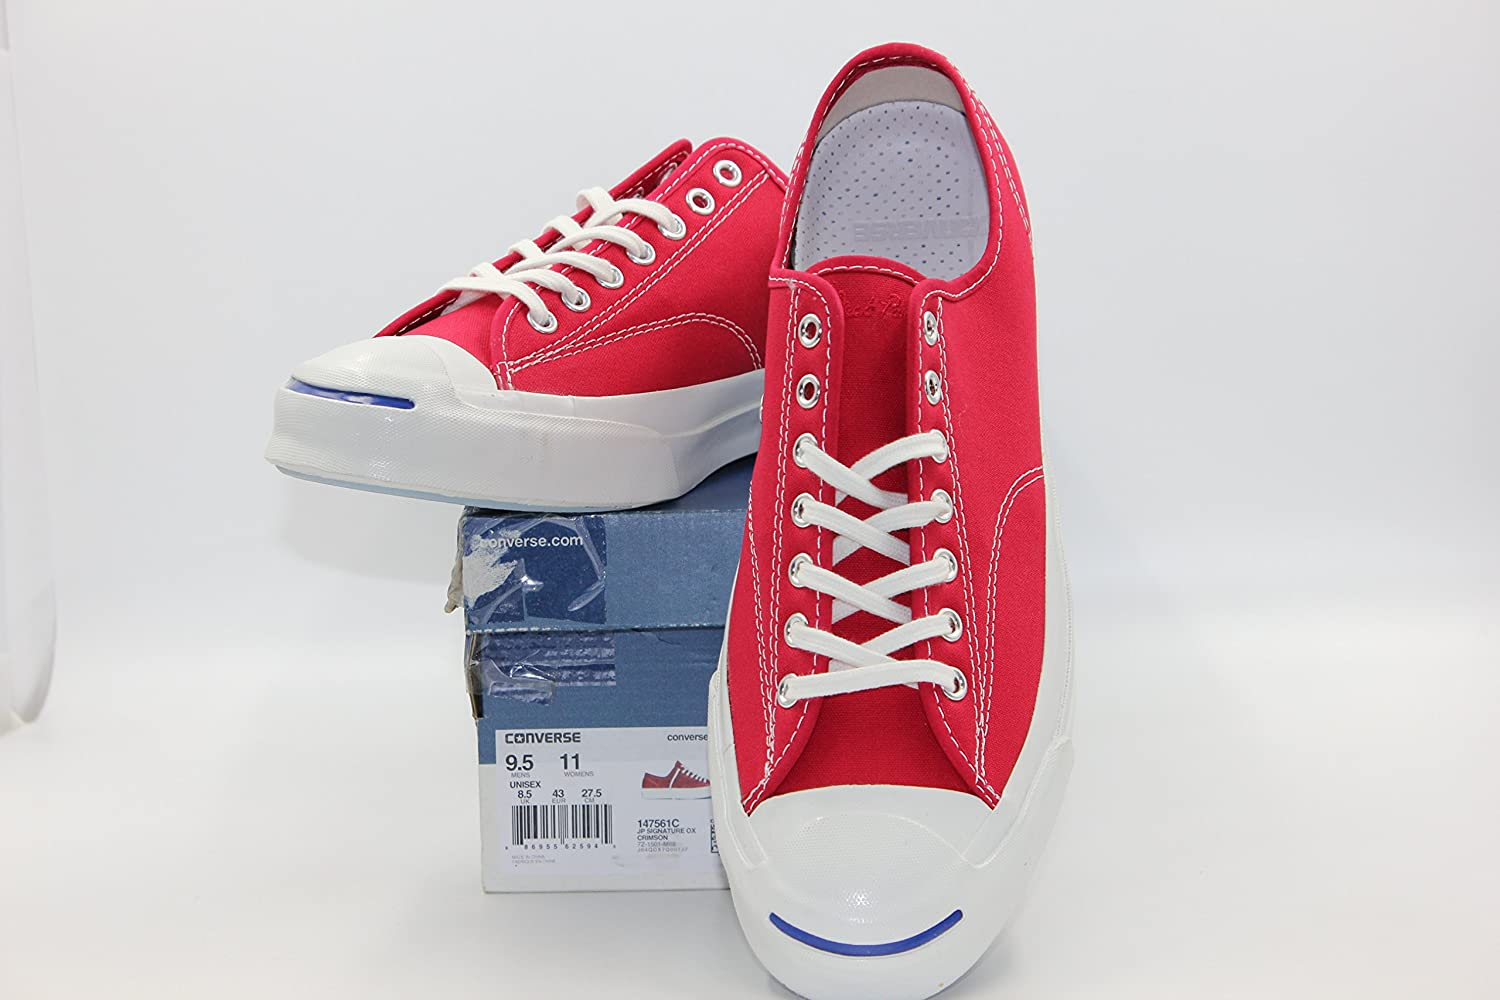 acfcffd91ce5b Amazon.com   Converse Jack Purcell Signature Low Top Sneakers ...